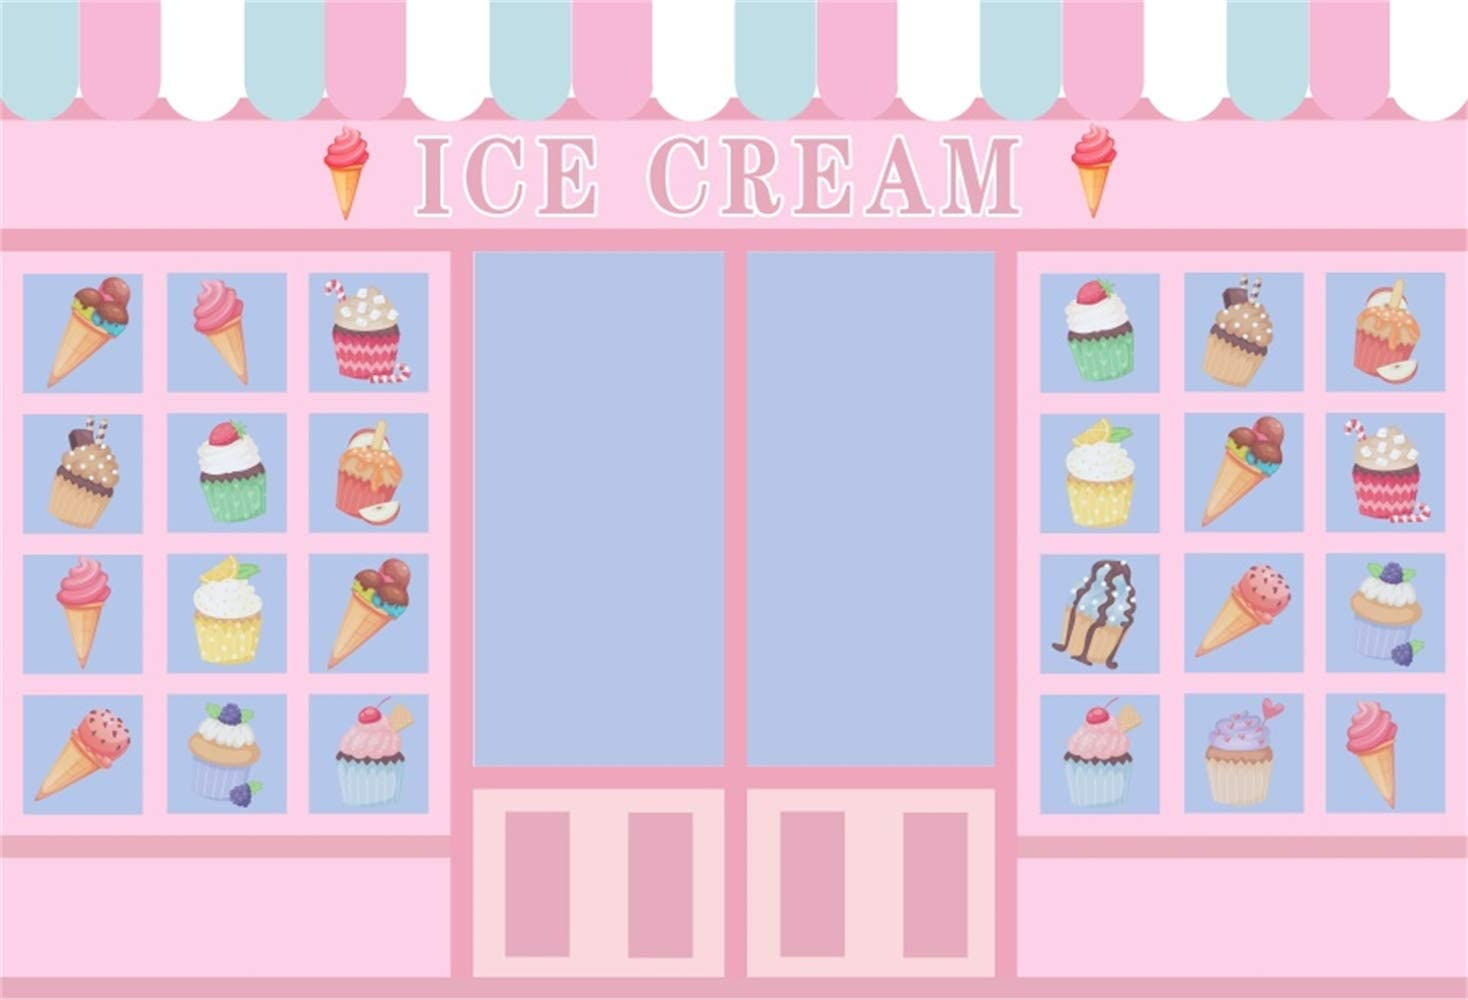 YongFoto 10x9ft Colorful Ice Cream Backdrop Kids Party Summer Club Photography Background Ice Cream Cone White Wallpaper Newborn Birthday Pictures Party Banner Dessert Table Decor